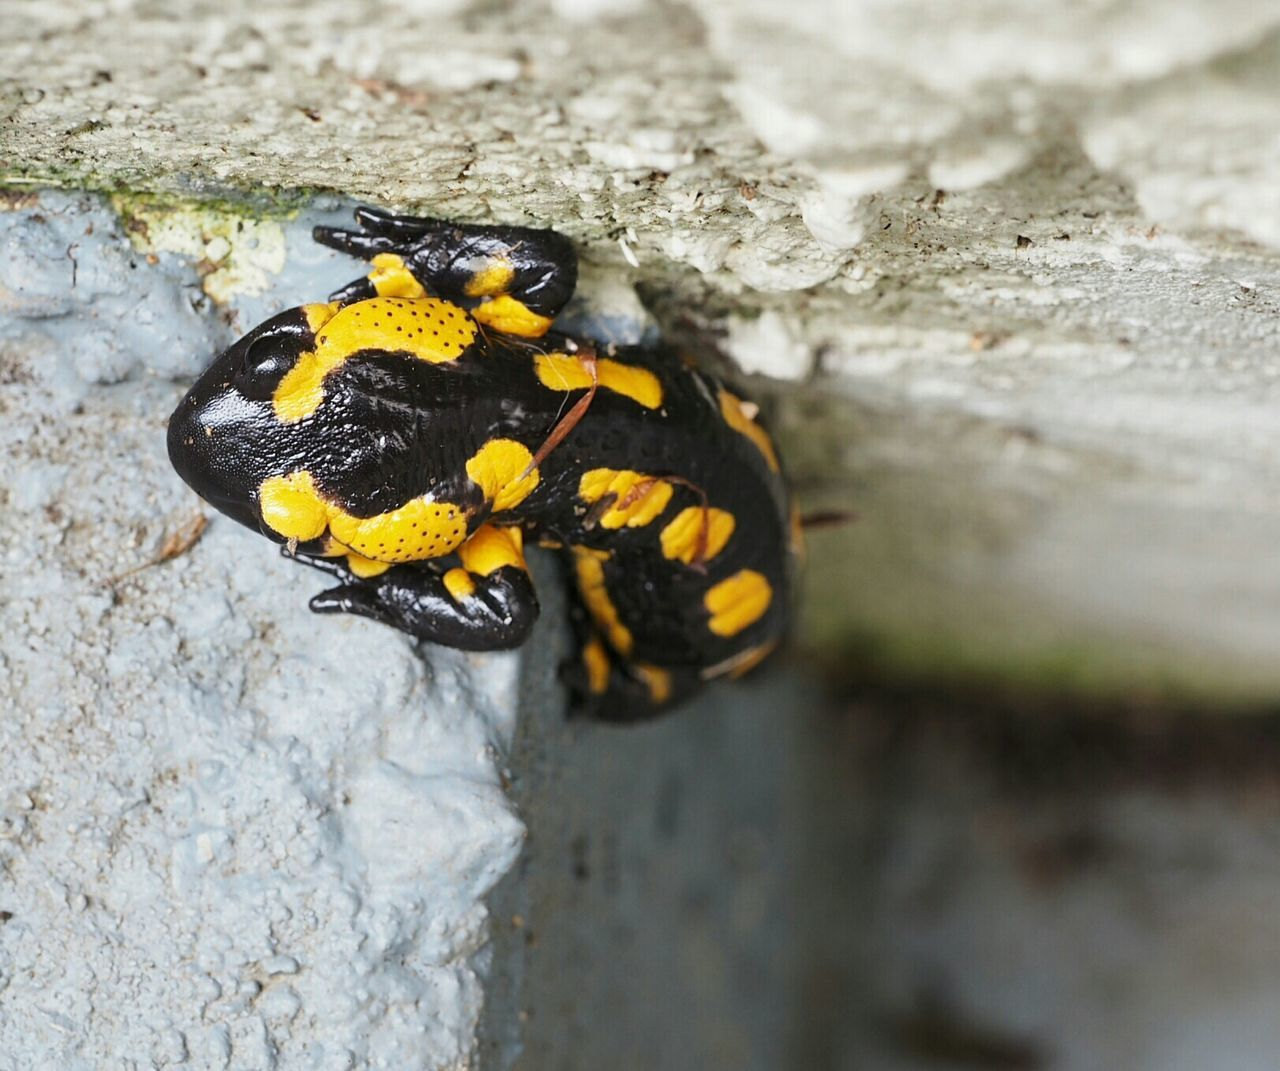 animal themes, animals in the wild, insect, one animal, close-up, animal wildlife, day, ladybug, yellow, outdoors, no people, nature, tiny